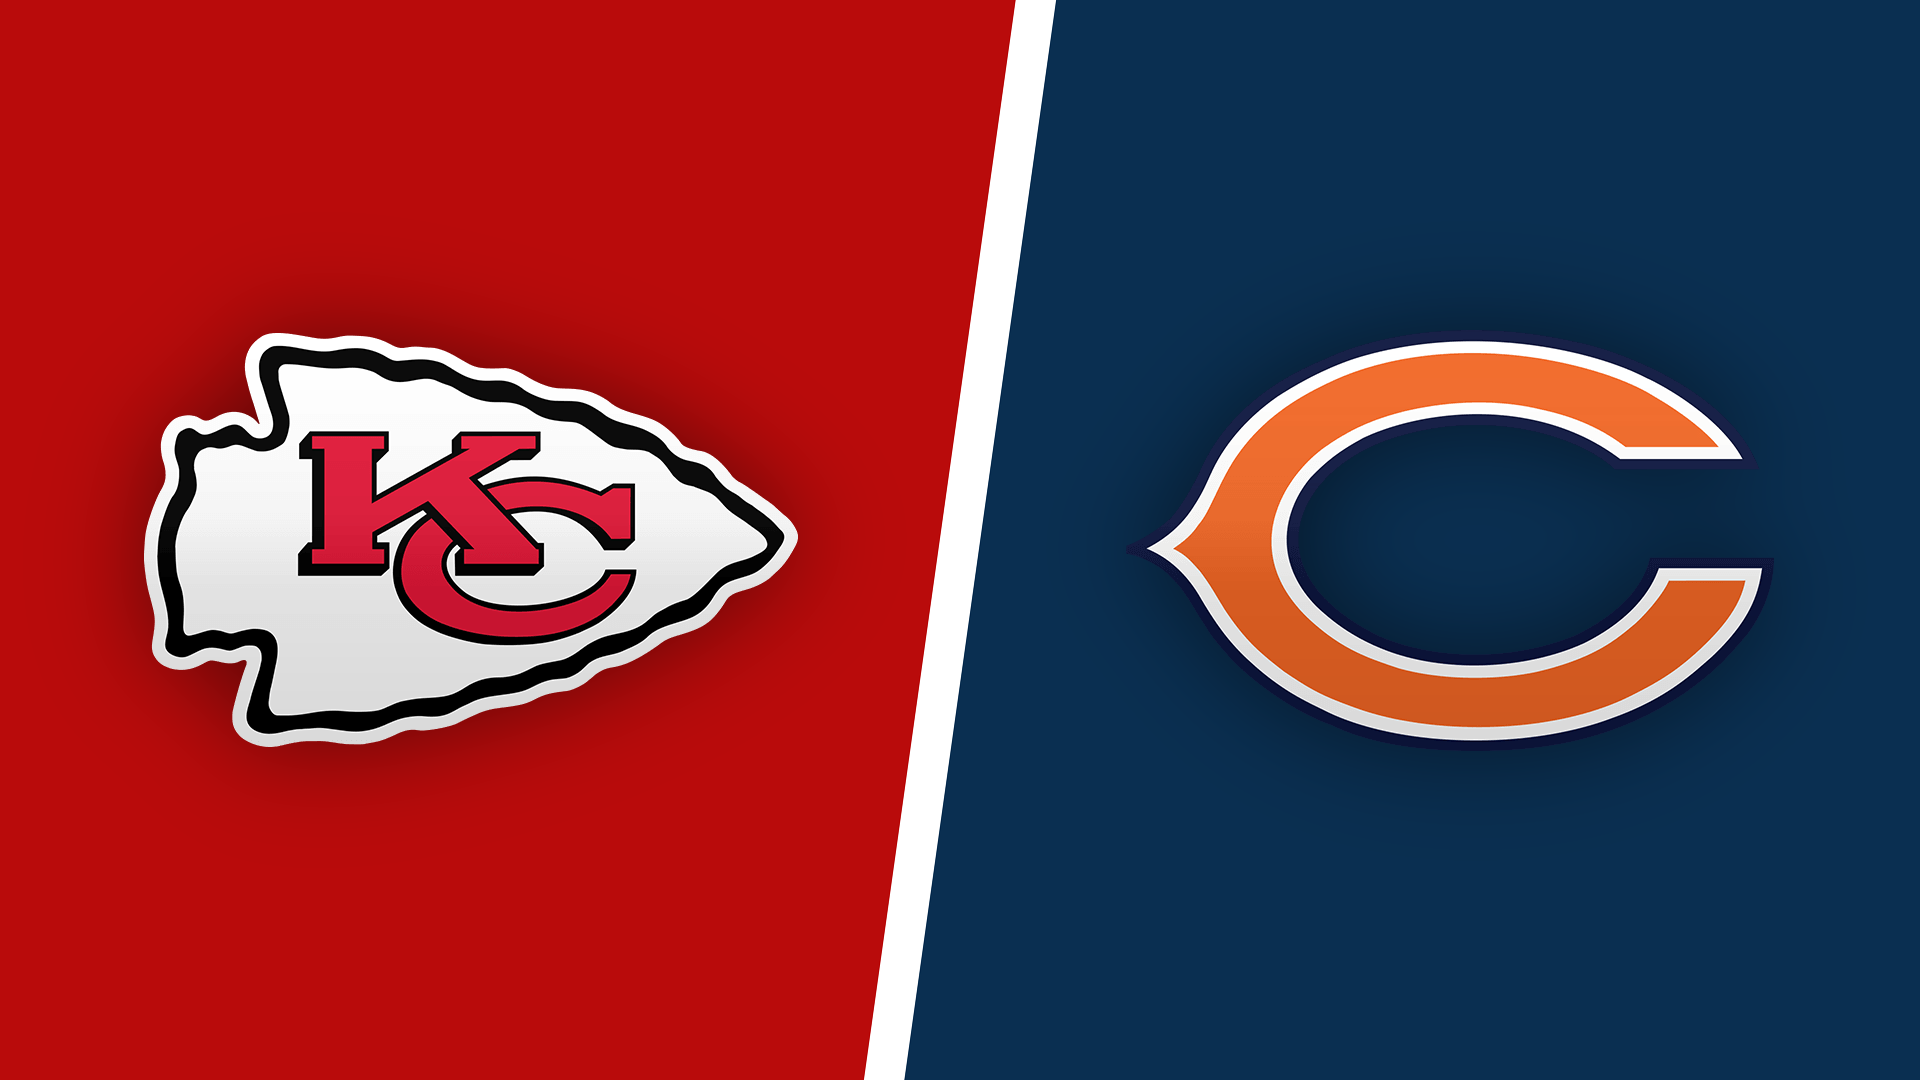 How To Watch The Kansas City Chiefs At Chicago Bears On Nbc Live For Free On Apple Tv Roku Fire Tv Ios Android The Streamable